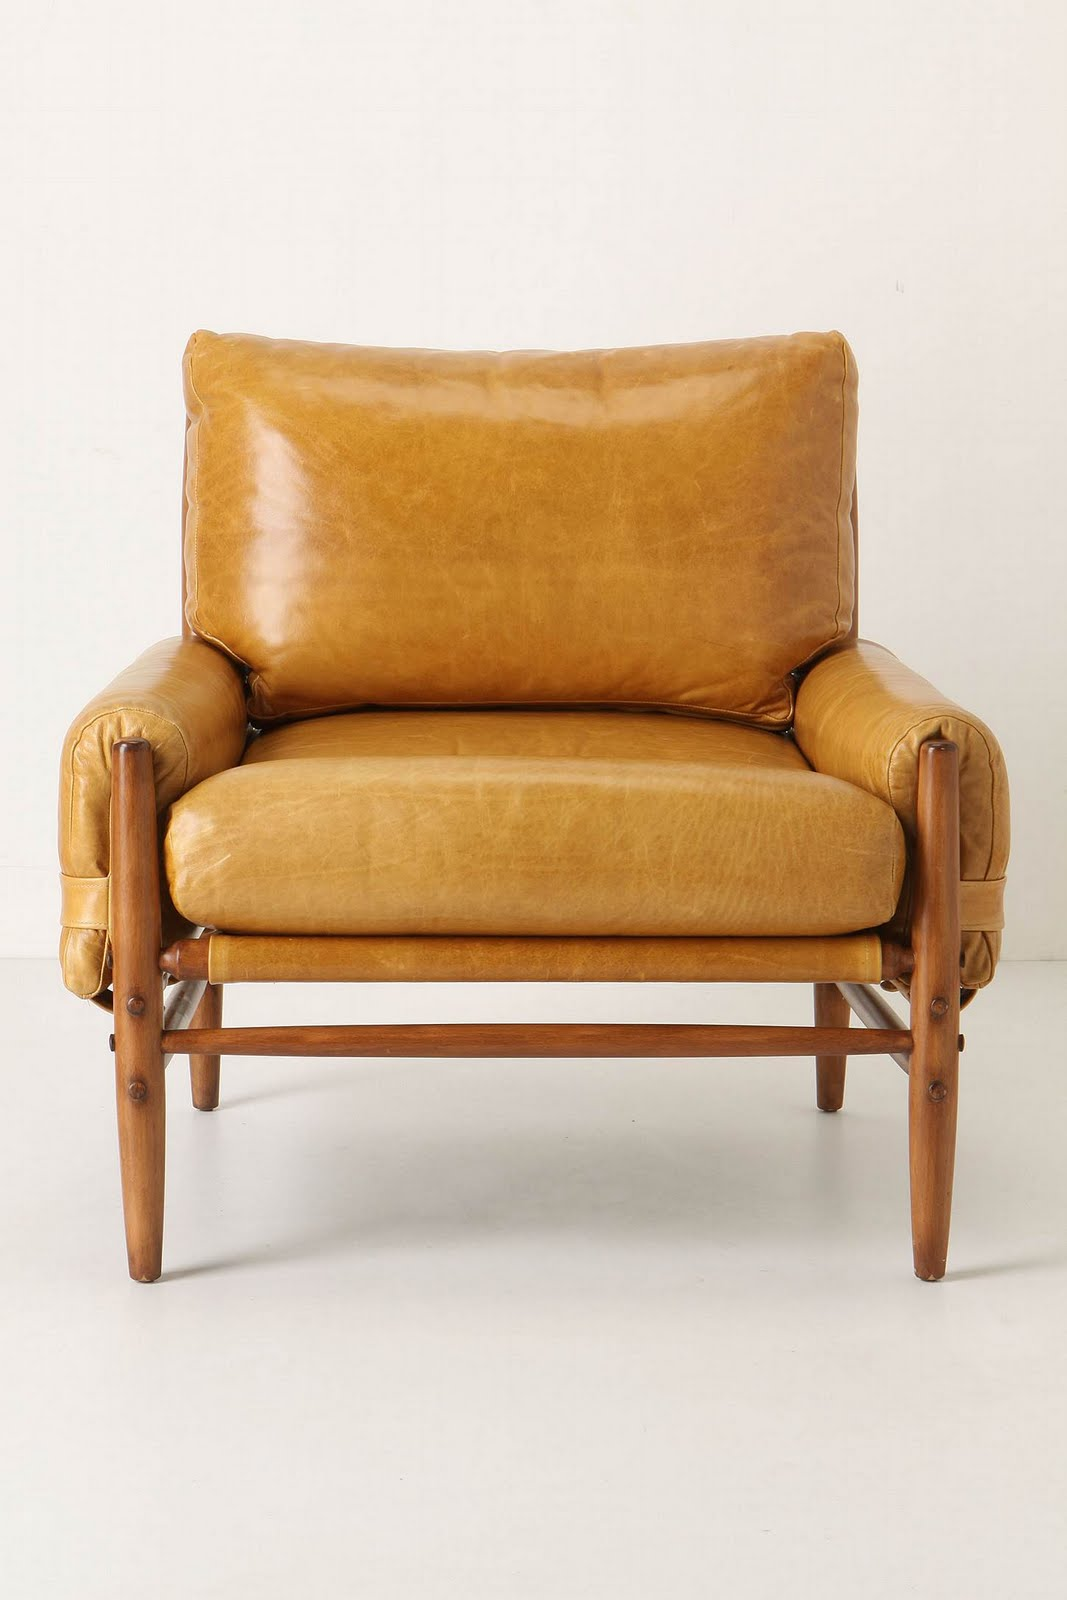 The New Victorian Ruralist Interesting Chairs